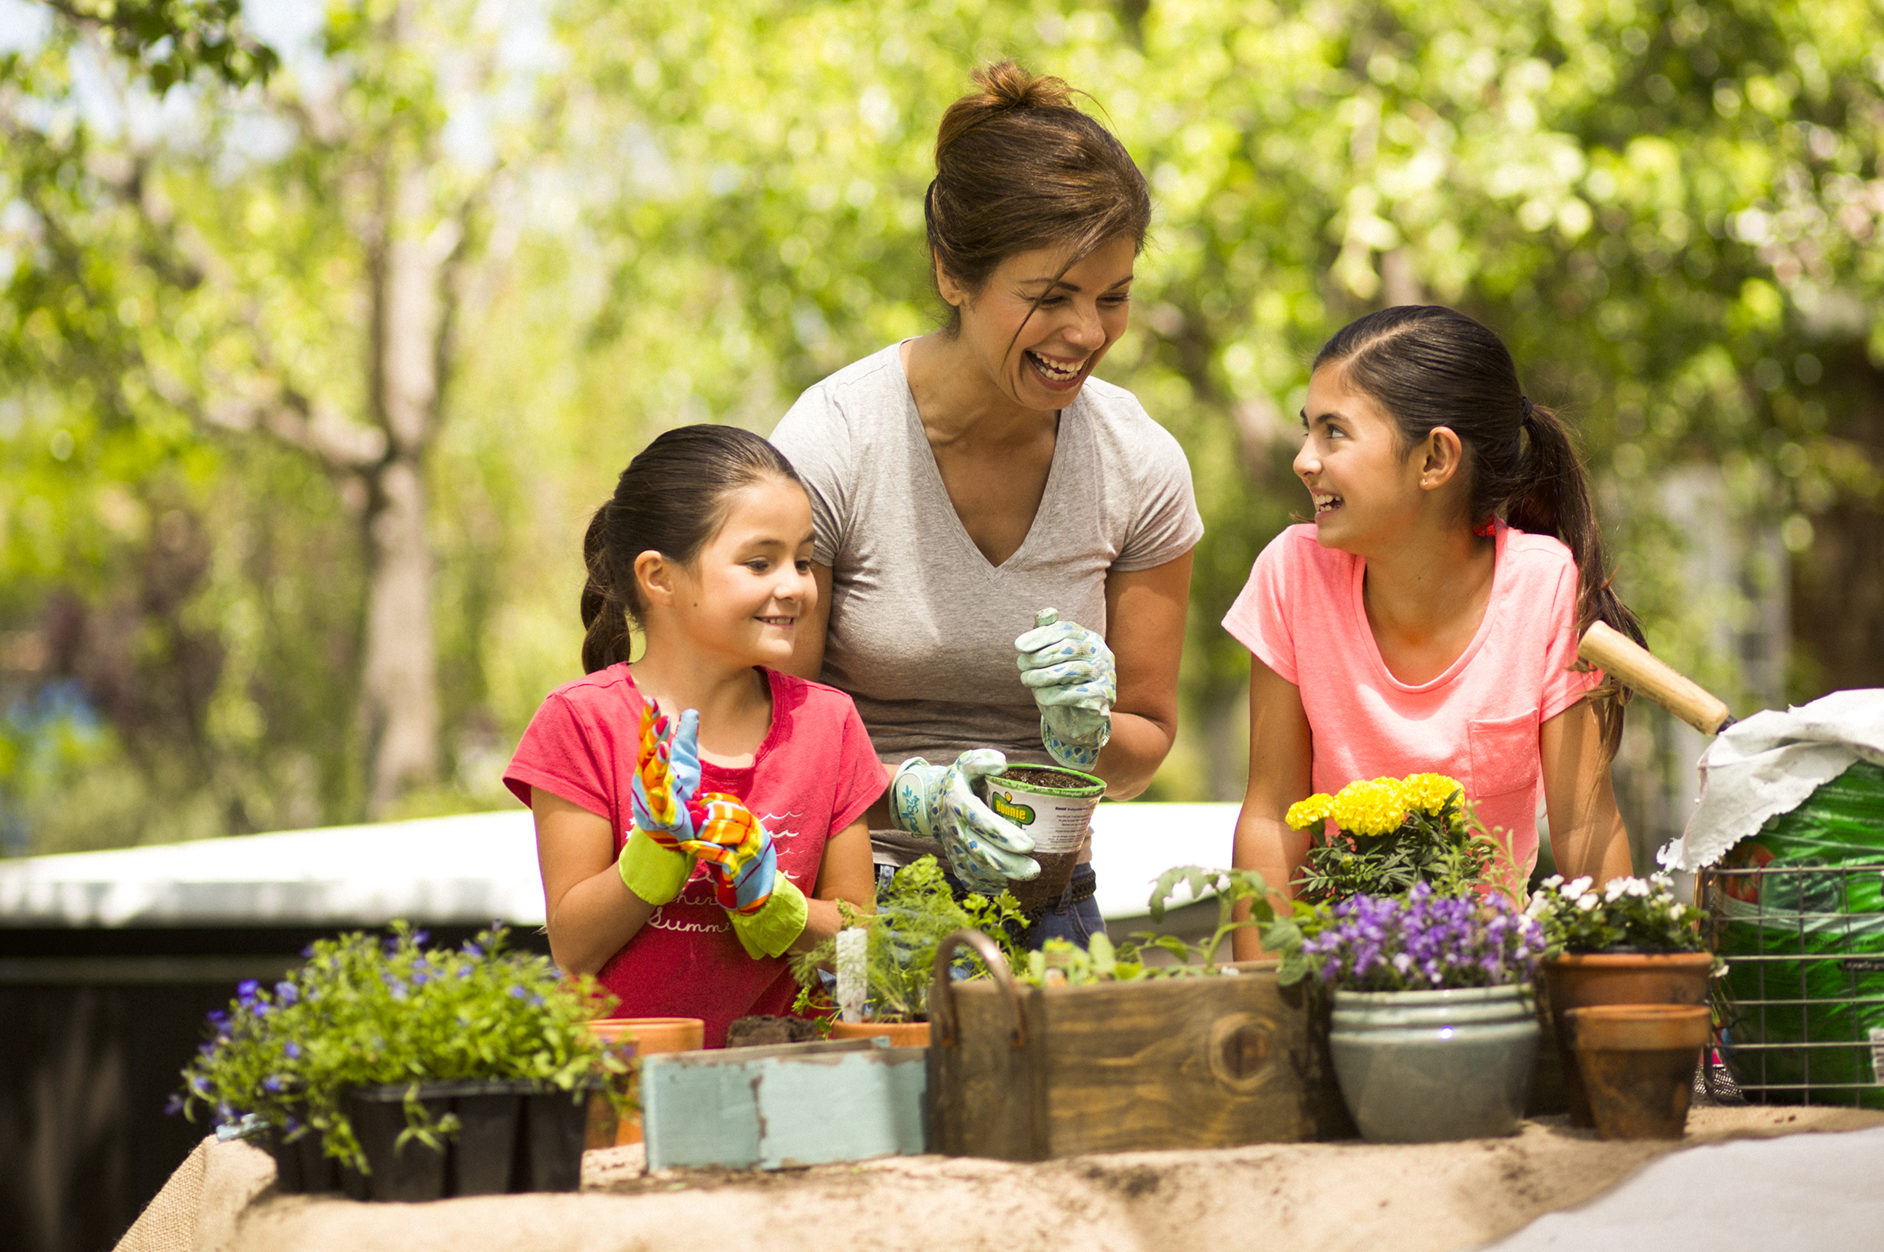 3 ways Families and friends can enjoy health and wellness together